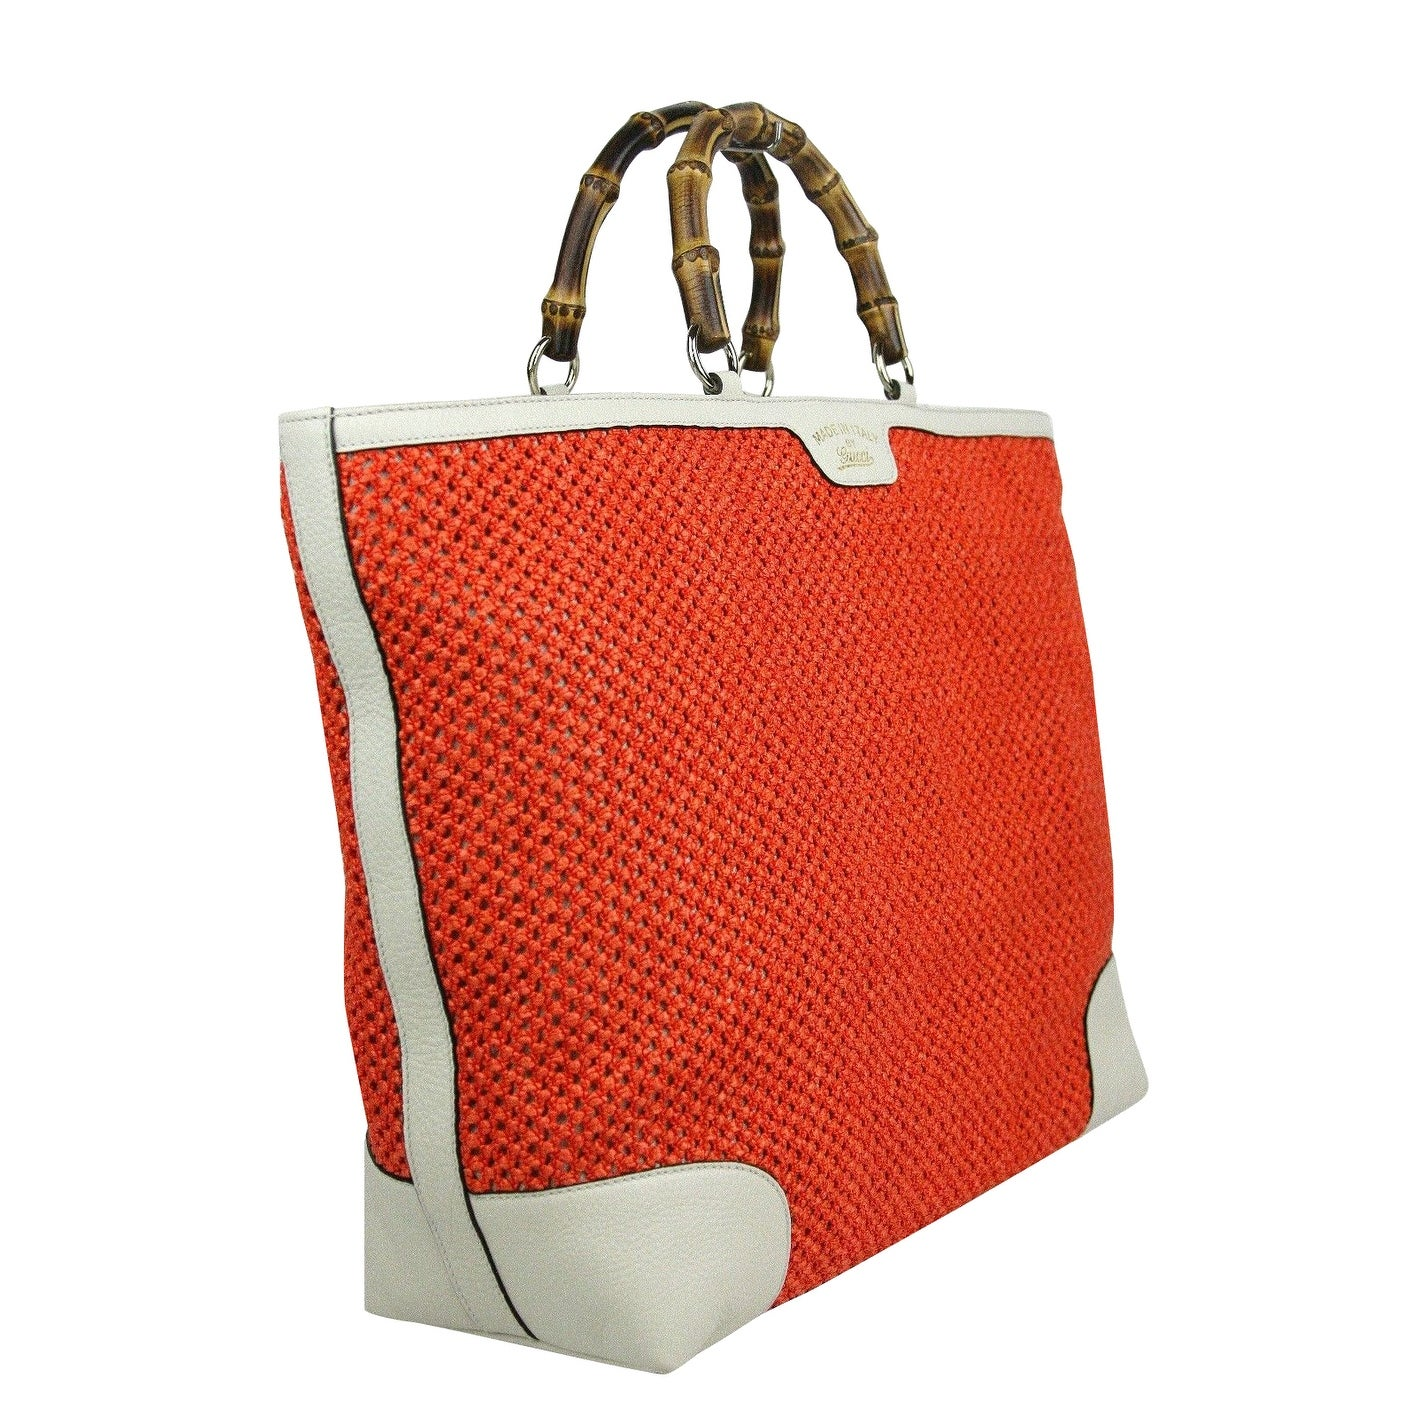 2a1ff593fa2e55 Shop Gucci Bamboo Orange Straw Leather Large Top Handle Tote Bag 338964  6273 - Free Shipping Today - Overstock - 27603215